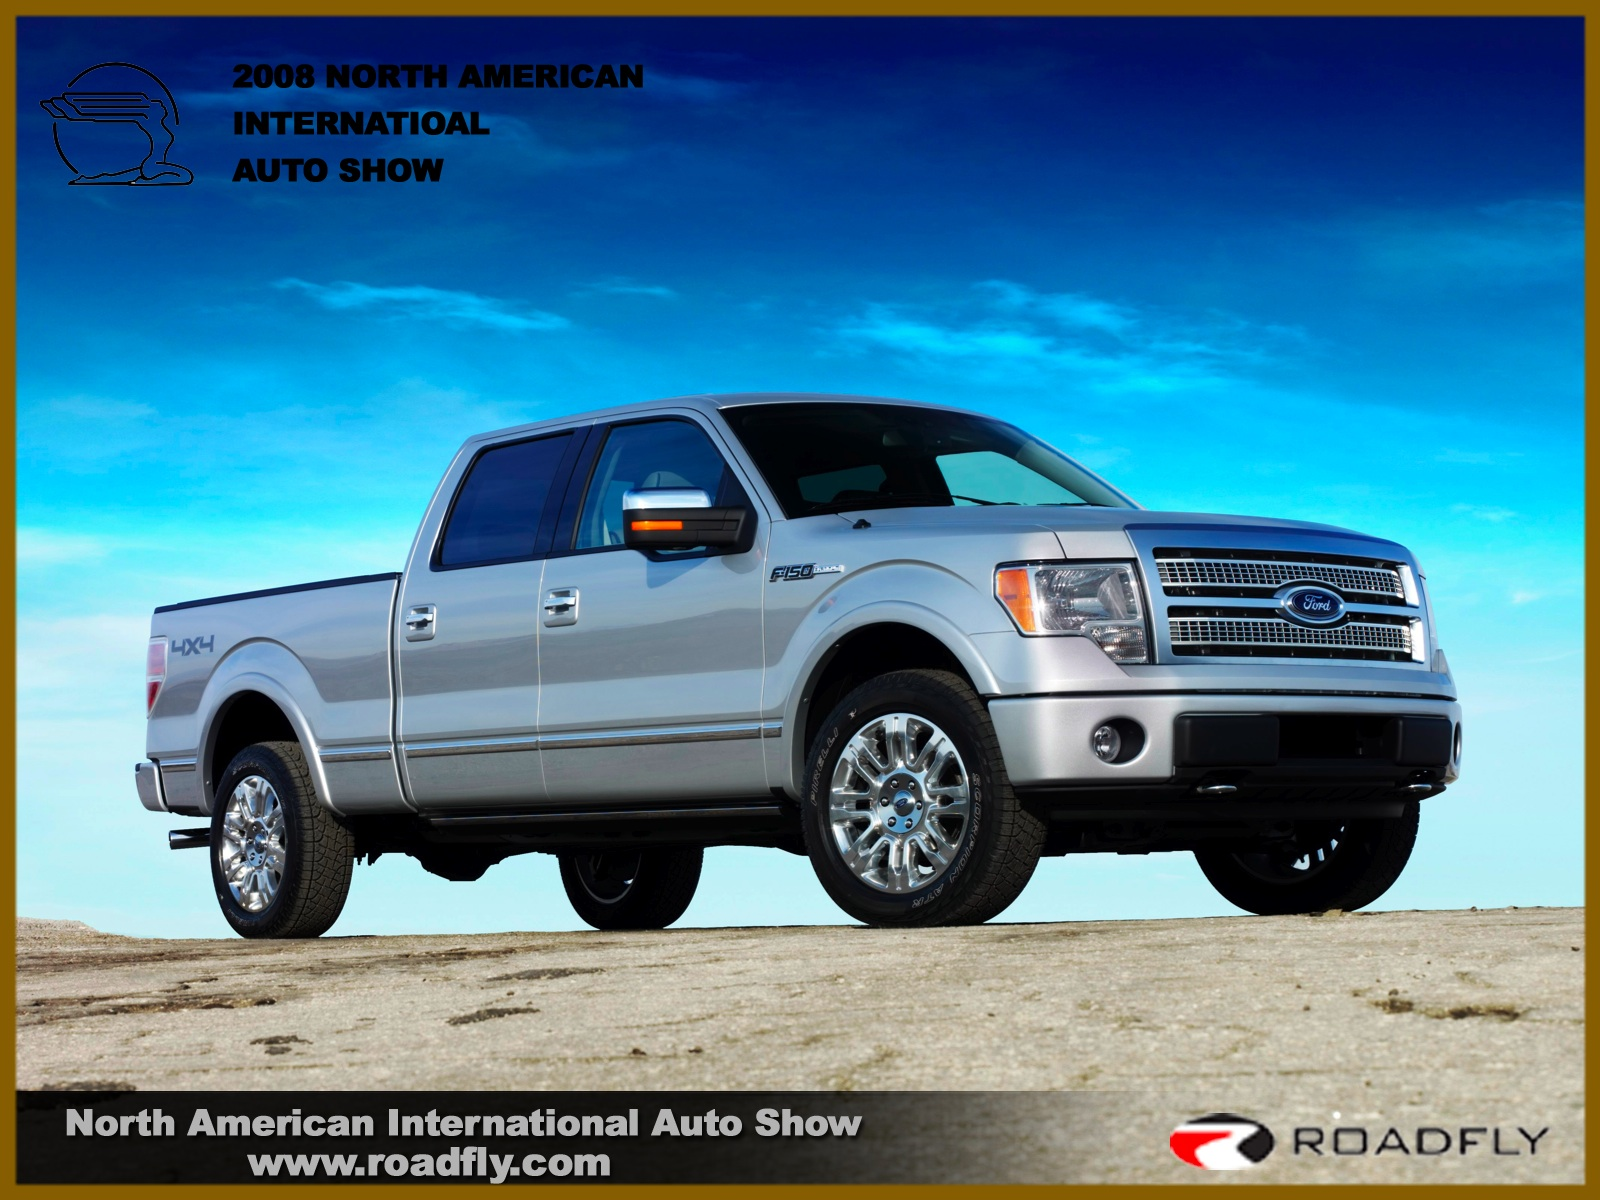 Ford f150 photo - 3